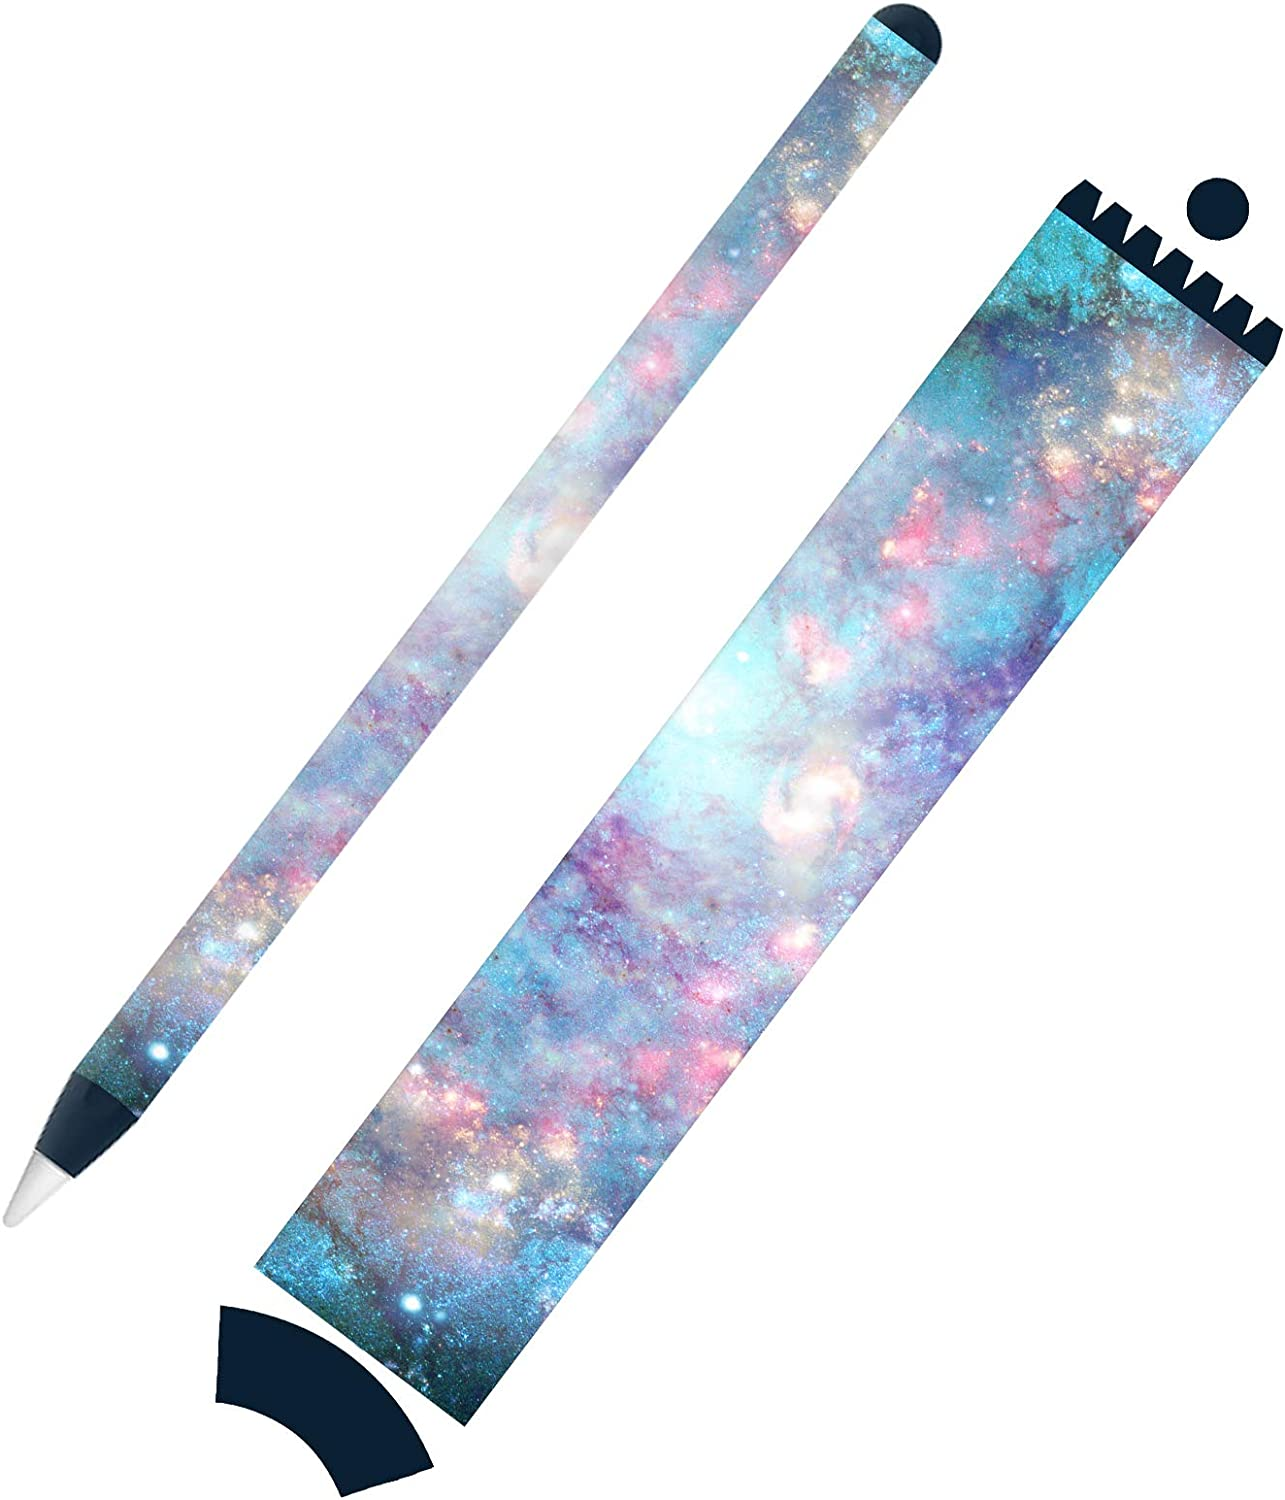 Head Case Designs Officially Licensed Barruf Abstract Space 2 Art Mix Vinyl Sticker Skin Decal Cover Compatible with Apple Pencil 2nd Gen